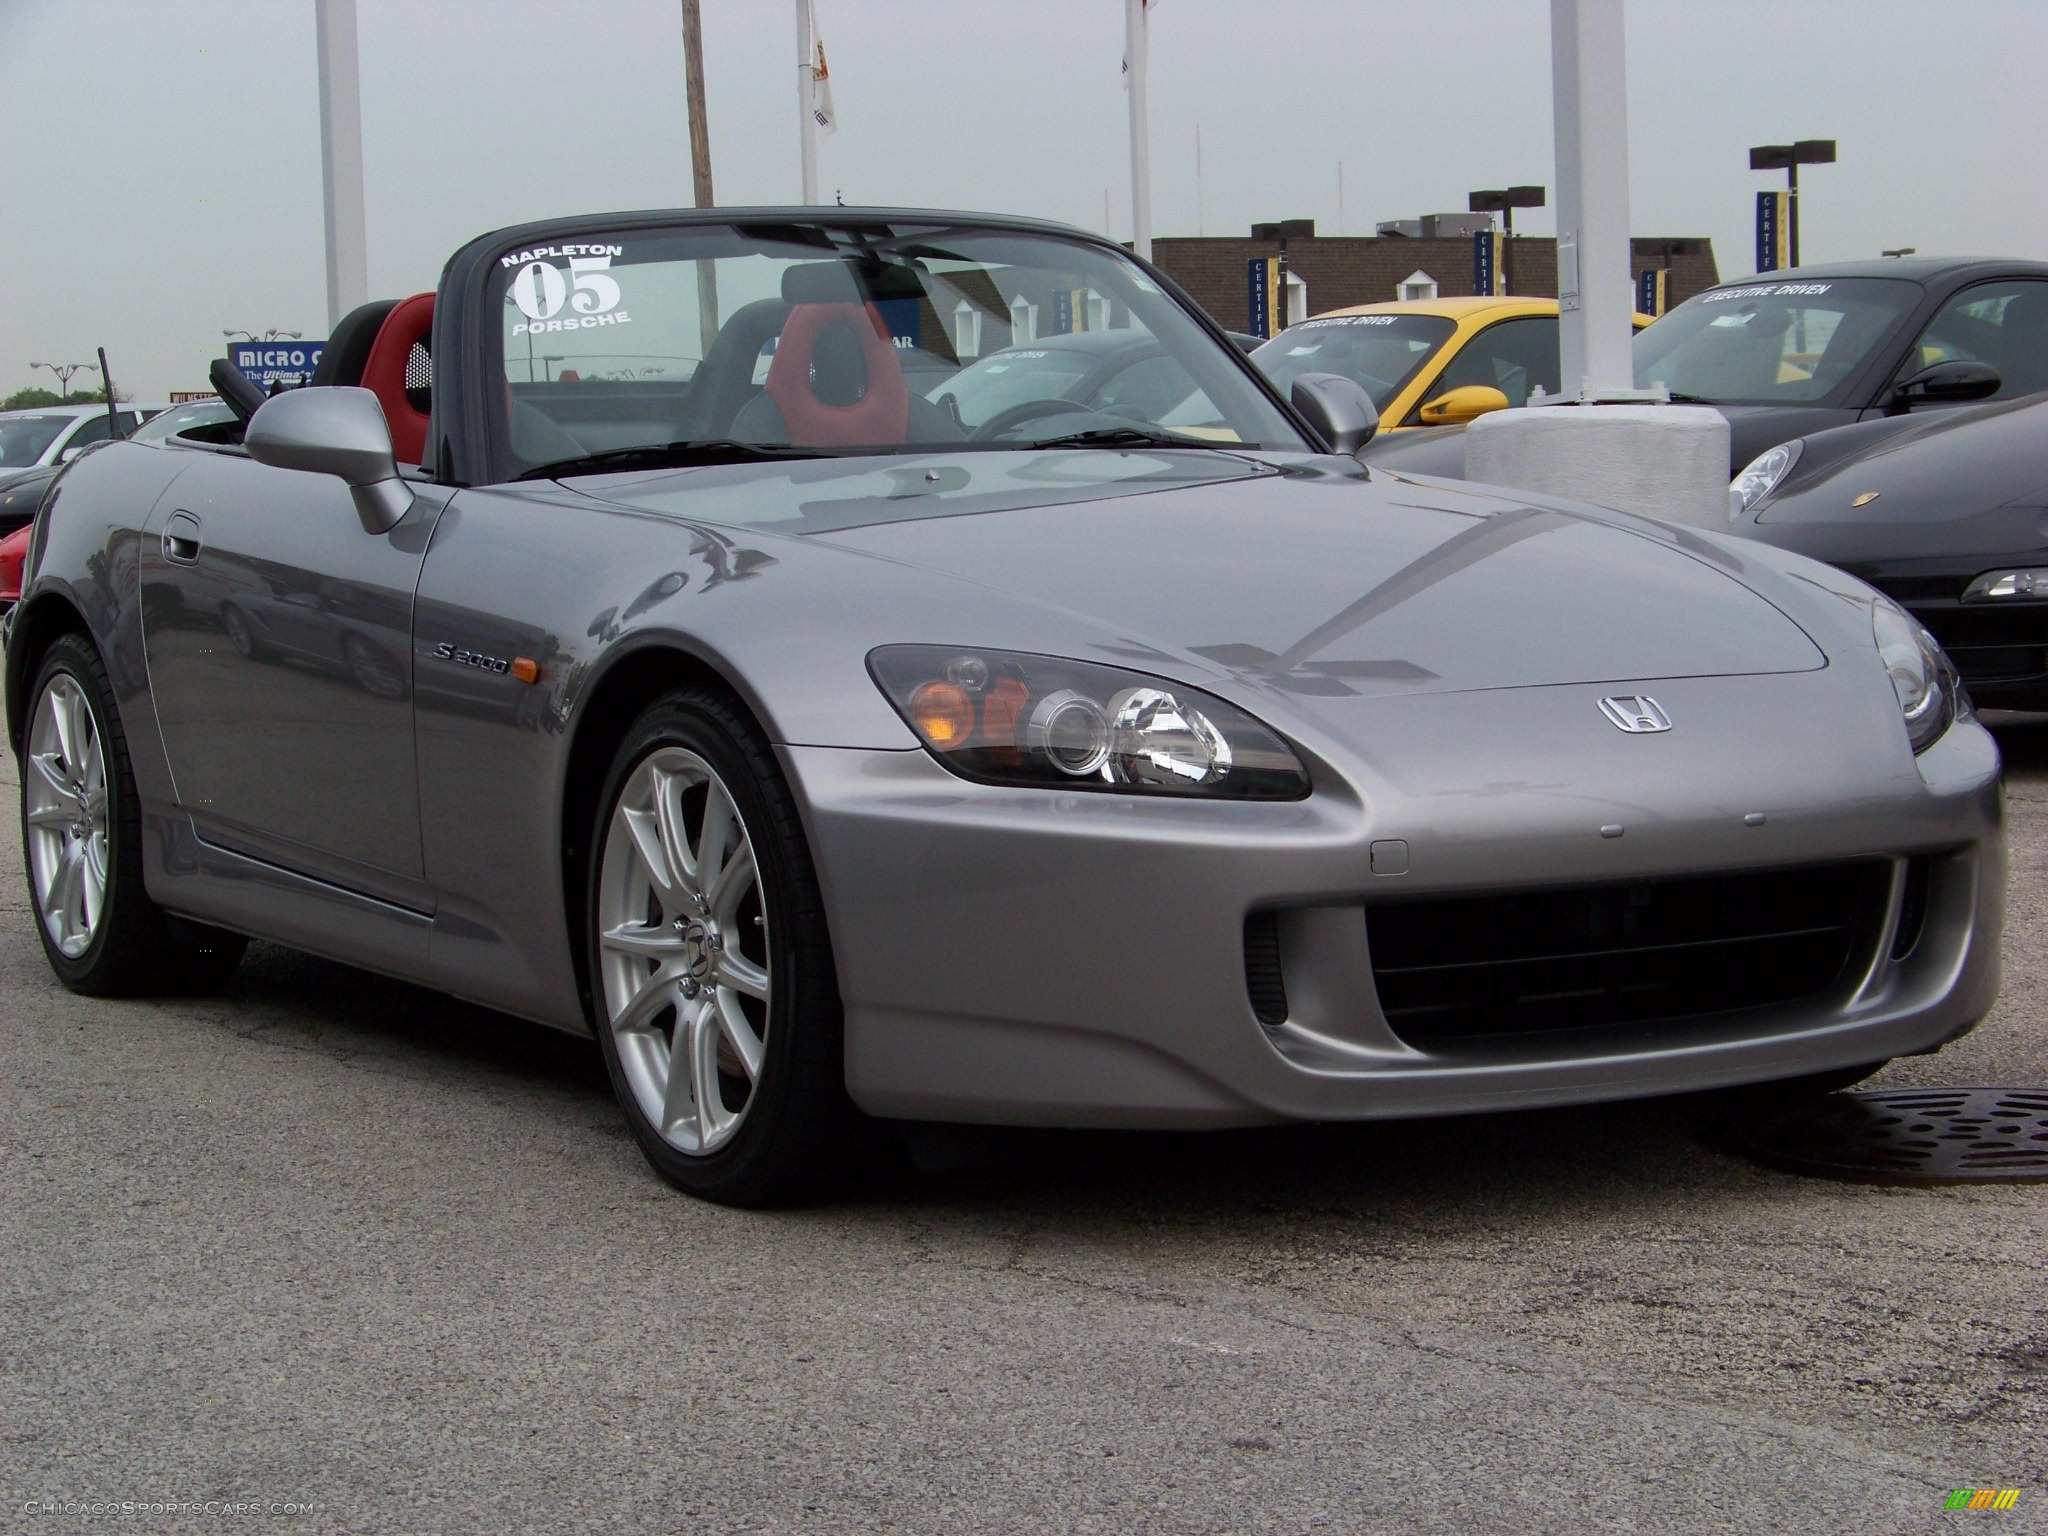 2005 Honda S2000 Roadster in Silverstone Metallic - 006951 ...